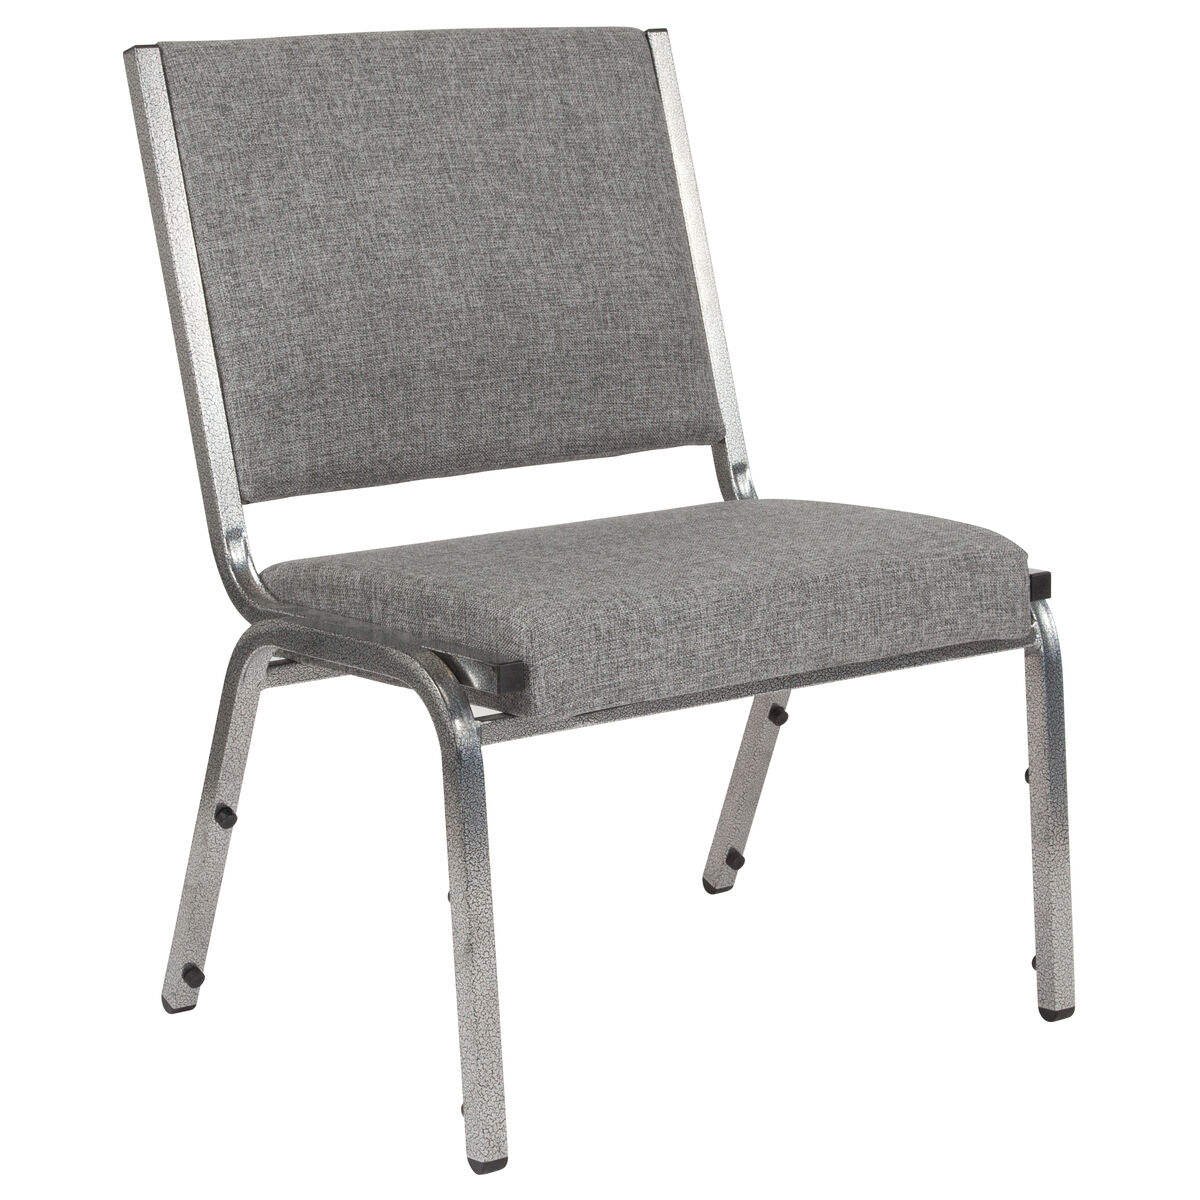 Gray Antimicrobial Fabric Medical Reception Chair